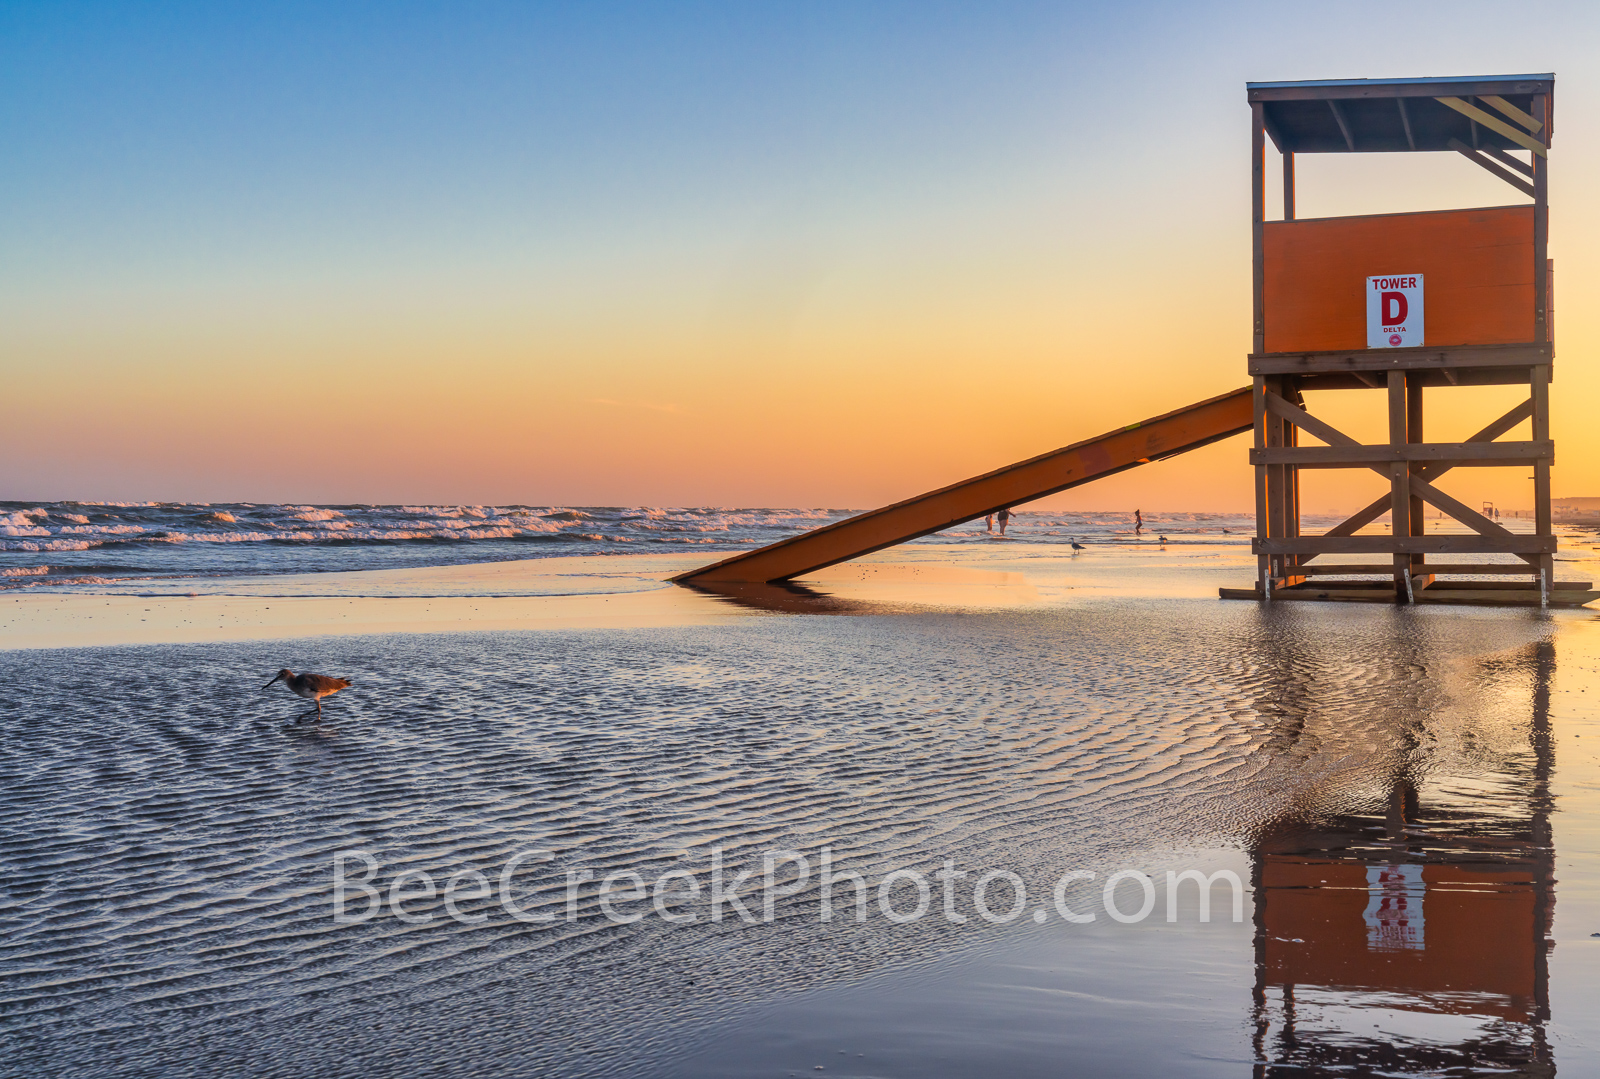 Port Aransas Life Guard Stand Dusk - Well it was after sunset and the color in the sky still had highlights of orange, yellows...